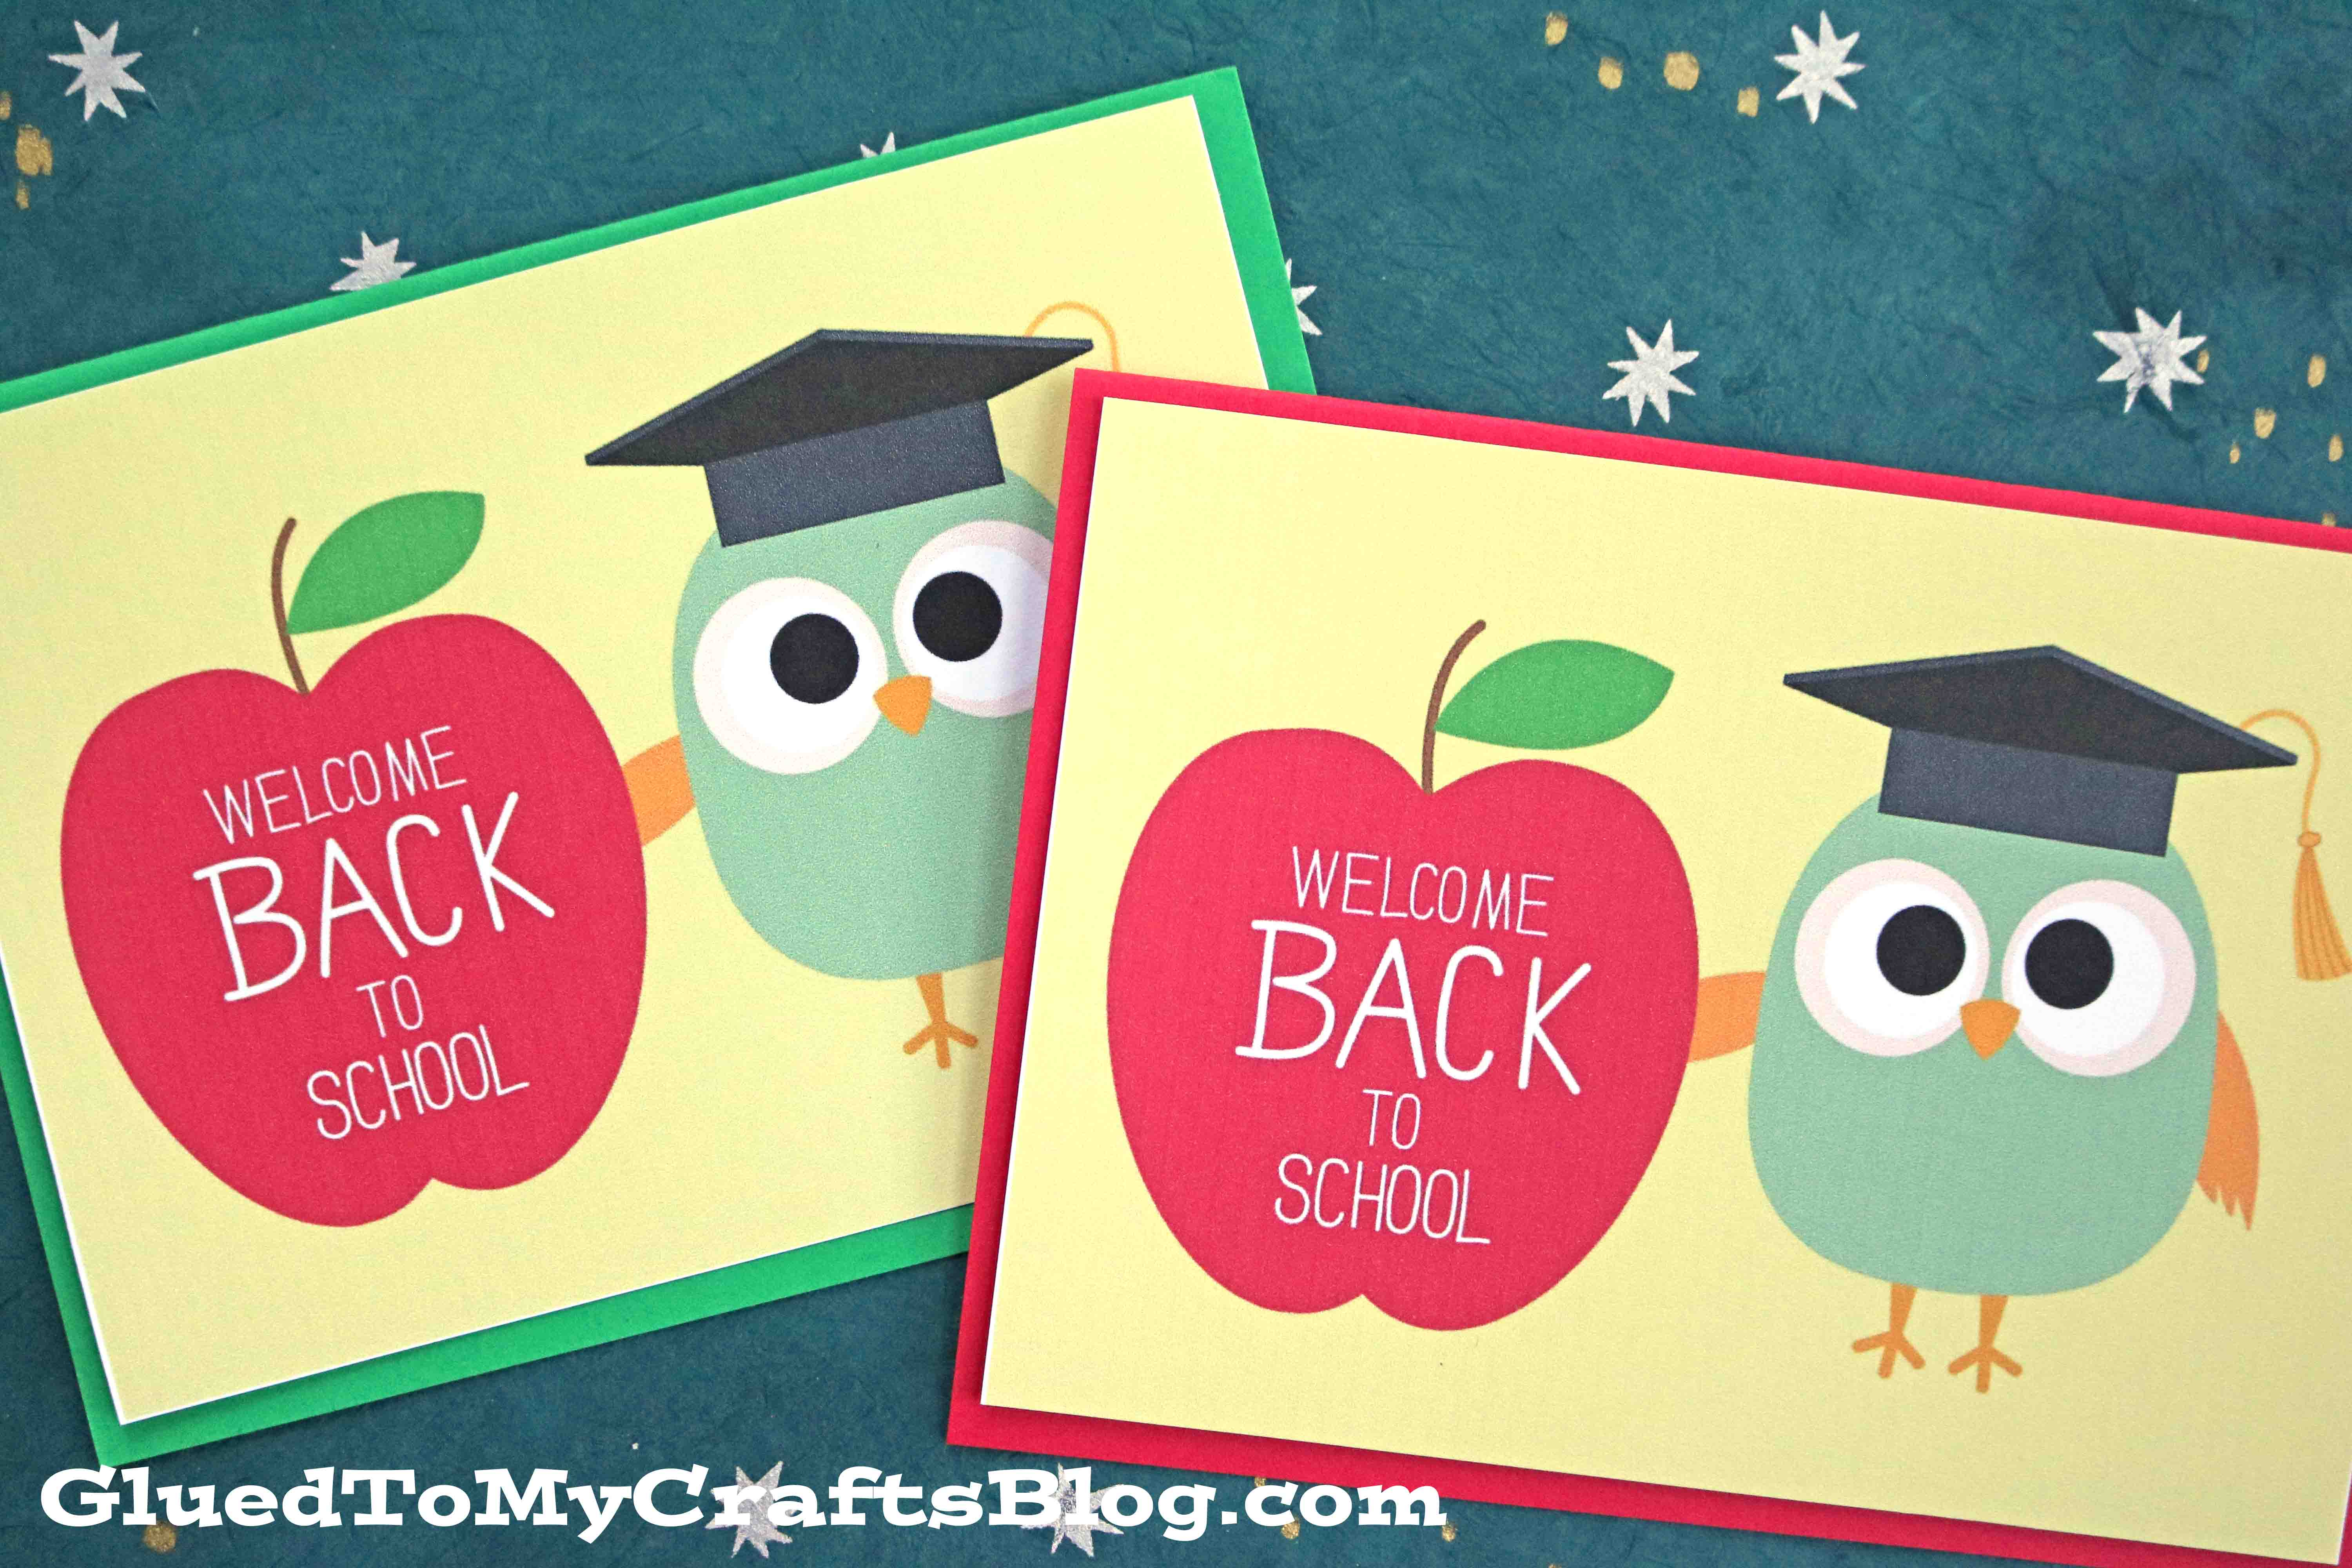 graphic about Owl Miss You Printable called Welcome Again Toward Faculty - Owl Card Printable